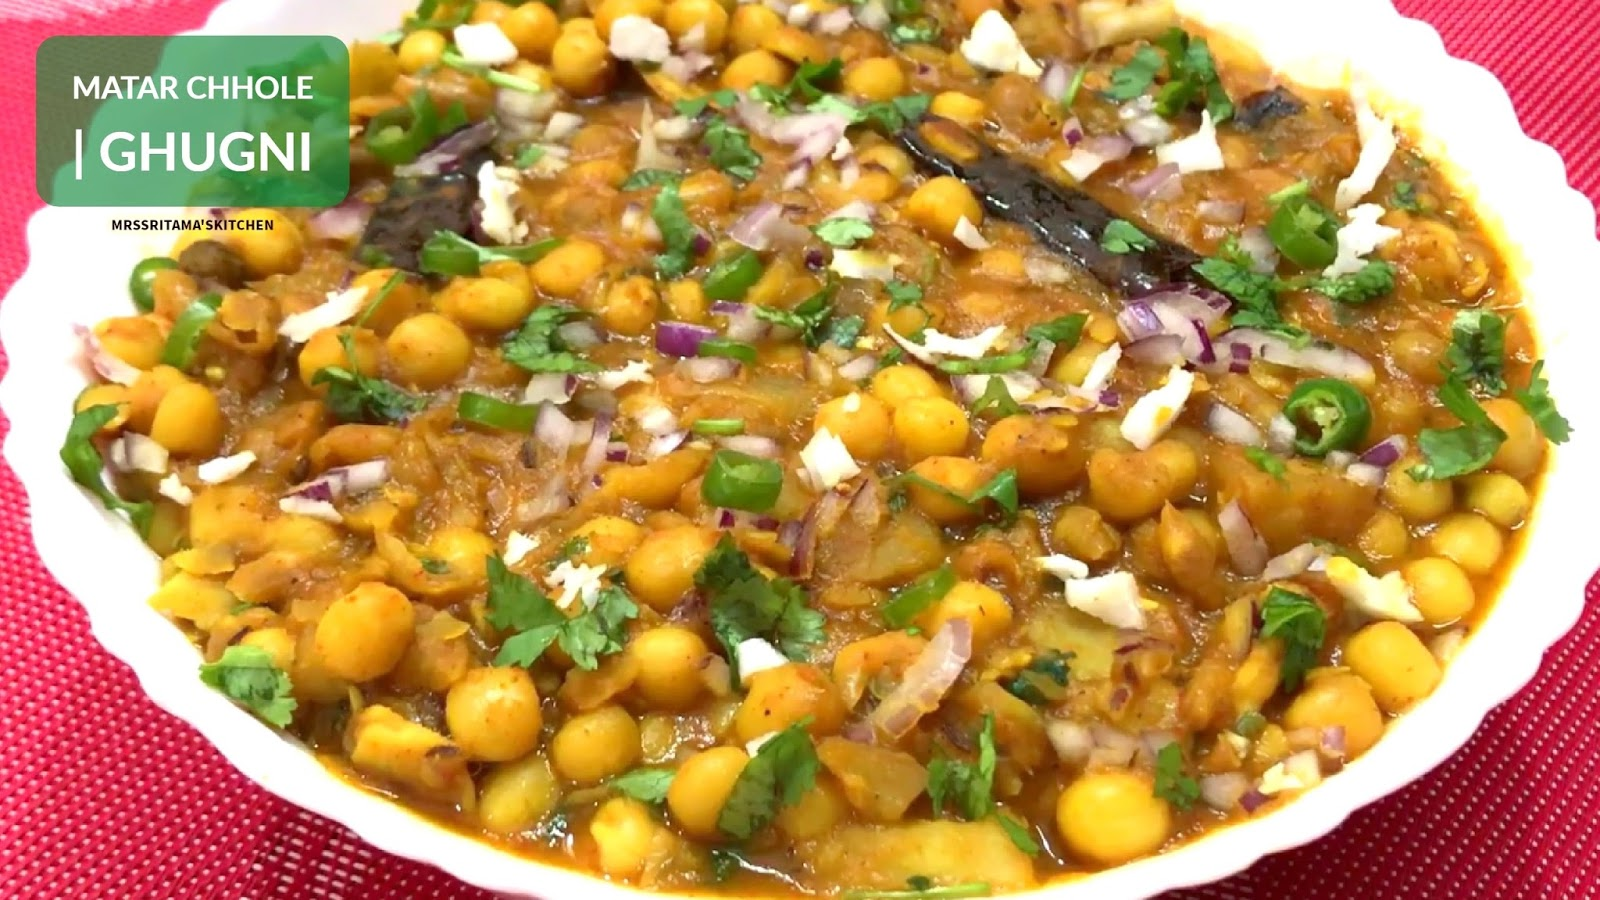 Sritamas food blog matar chole ke chaat matar ghugni chaat ghugni chaat recipe most popular kolkata street food matar ghugni chaat at home step by step with video forumfinder Images